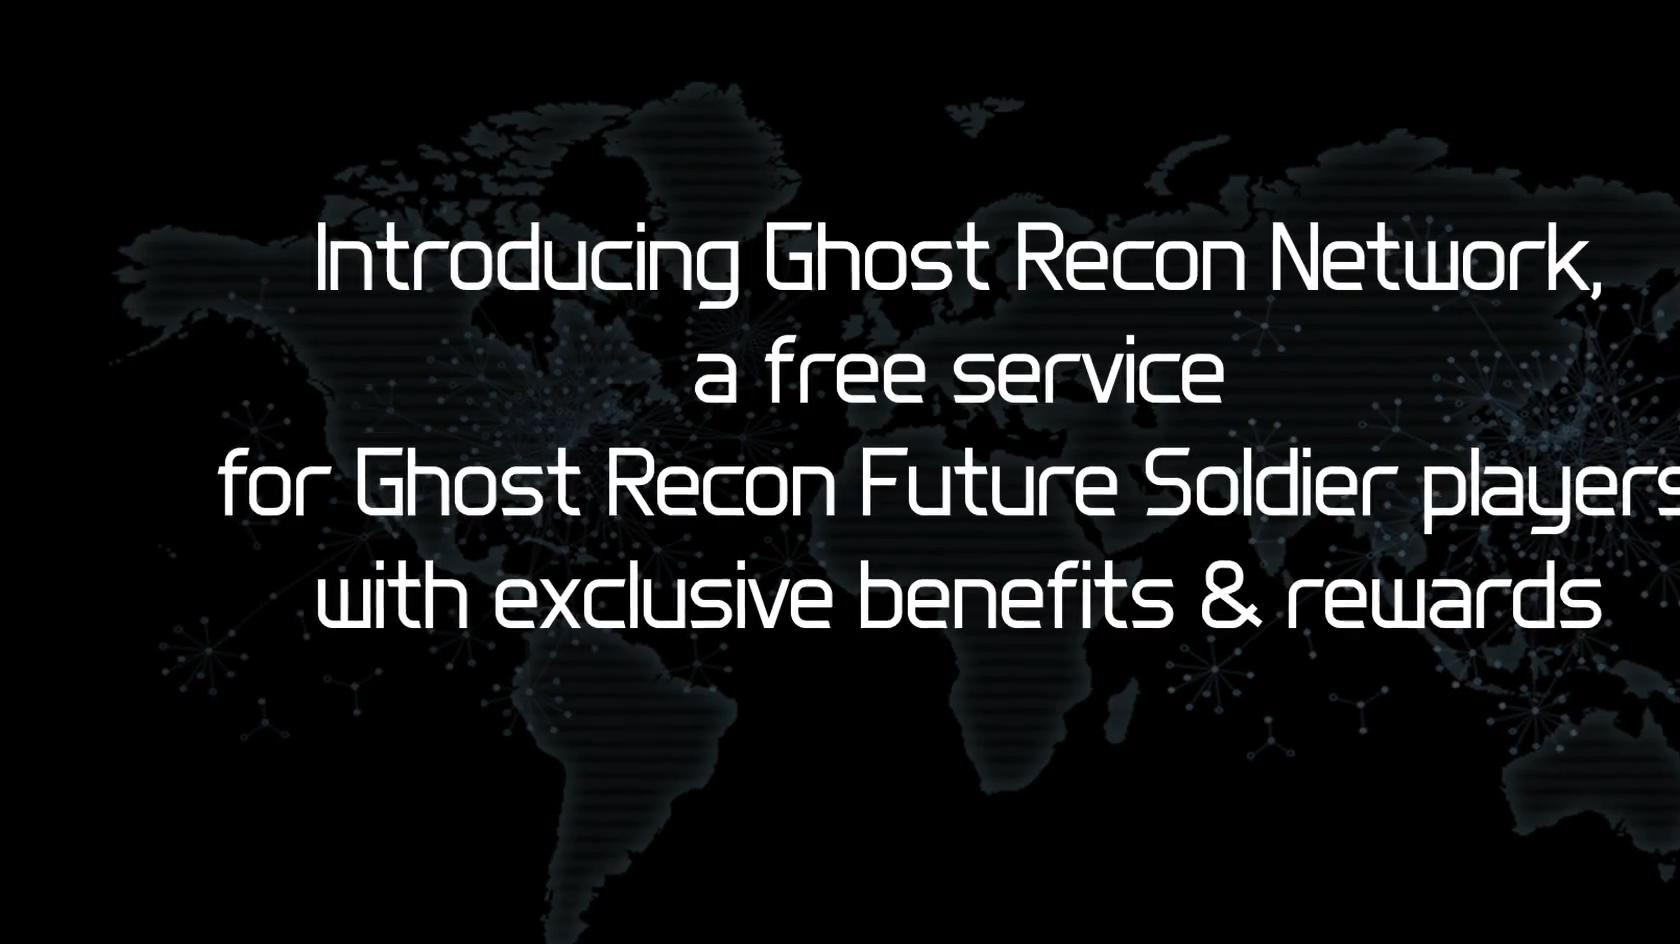 Ghostreconnetwork